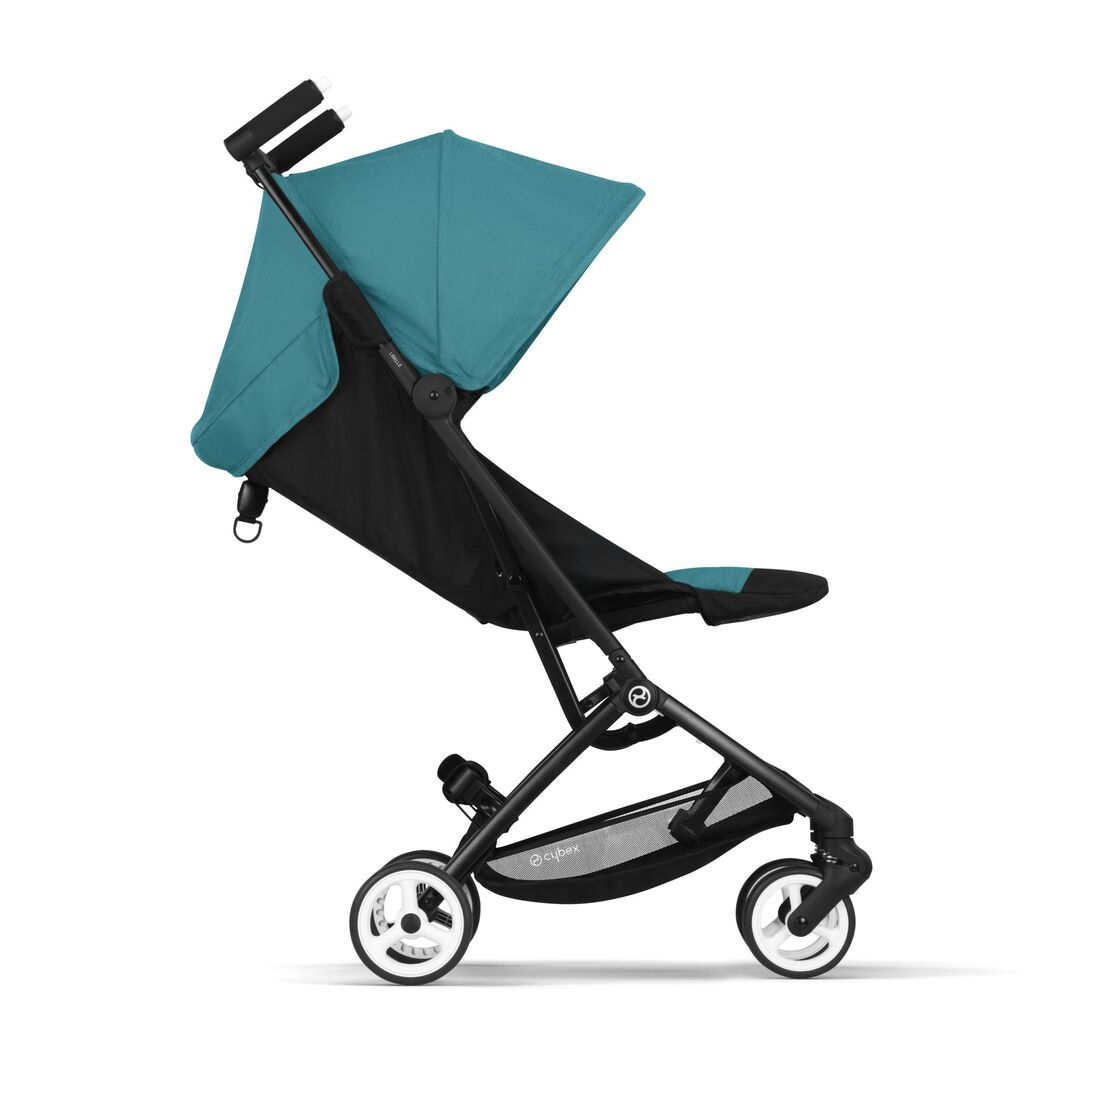 CYBEX Libelle - River Blue in River Blue large Bild 4